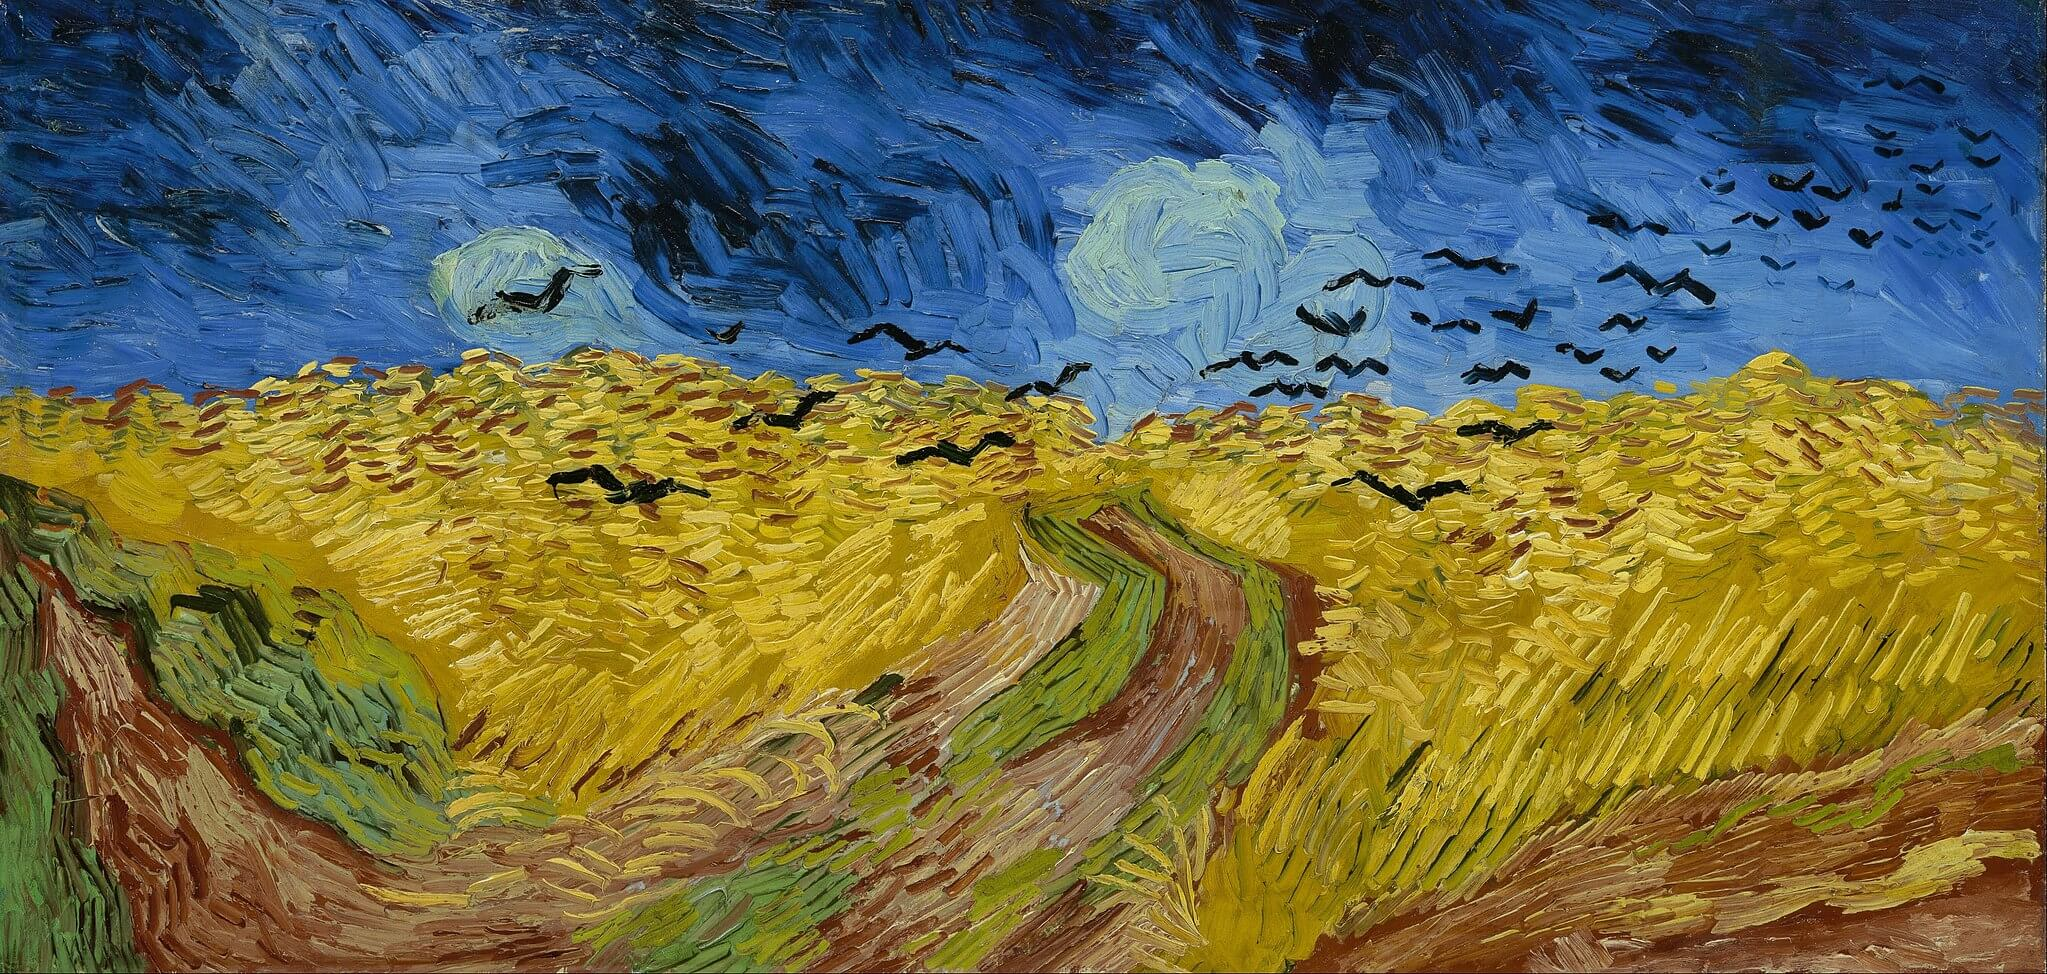 Vincent van Gogh. Wheatfield with crows. July 1890.